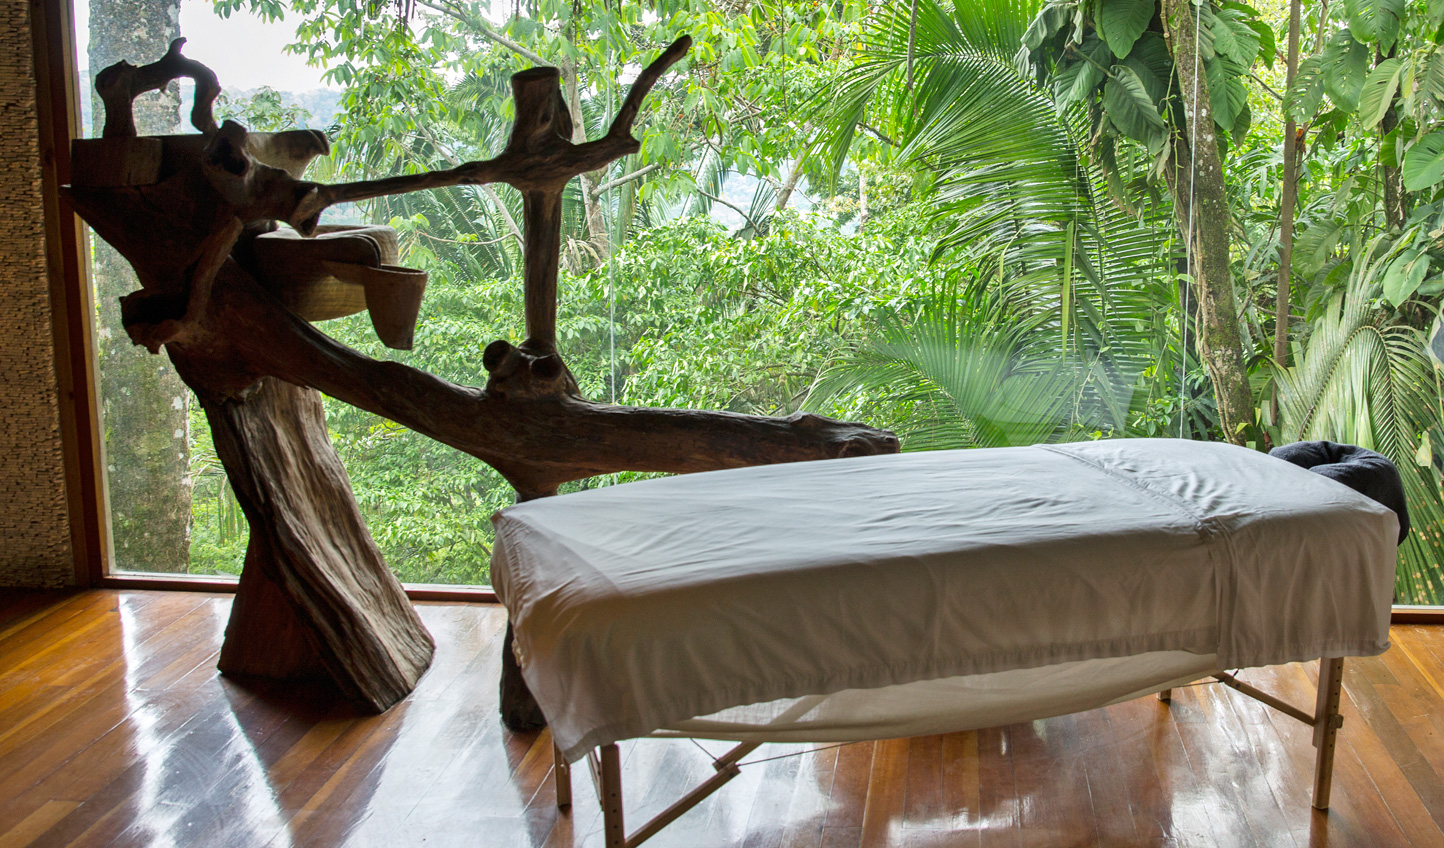 Soothe your soul with a relaxing massage to a soundtrack of tropical birds